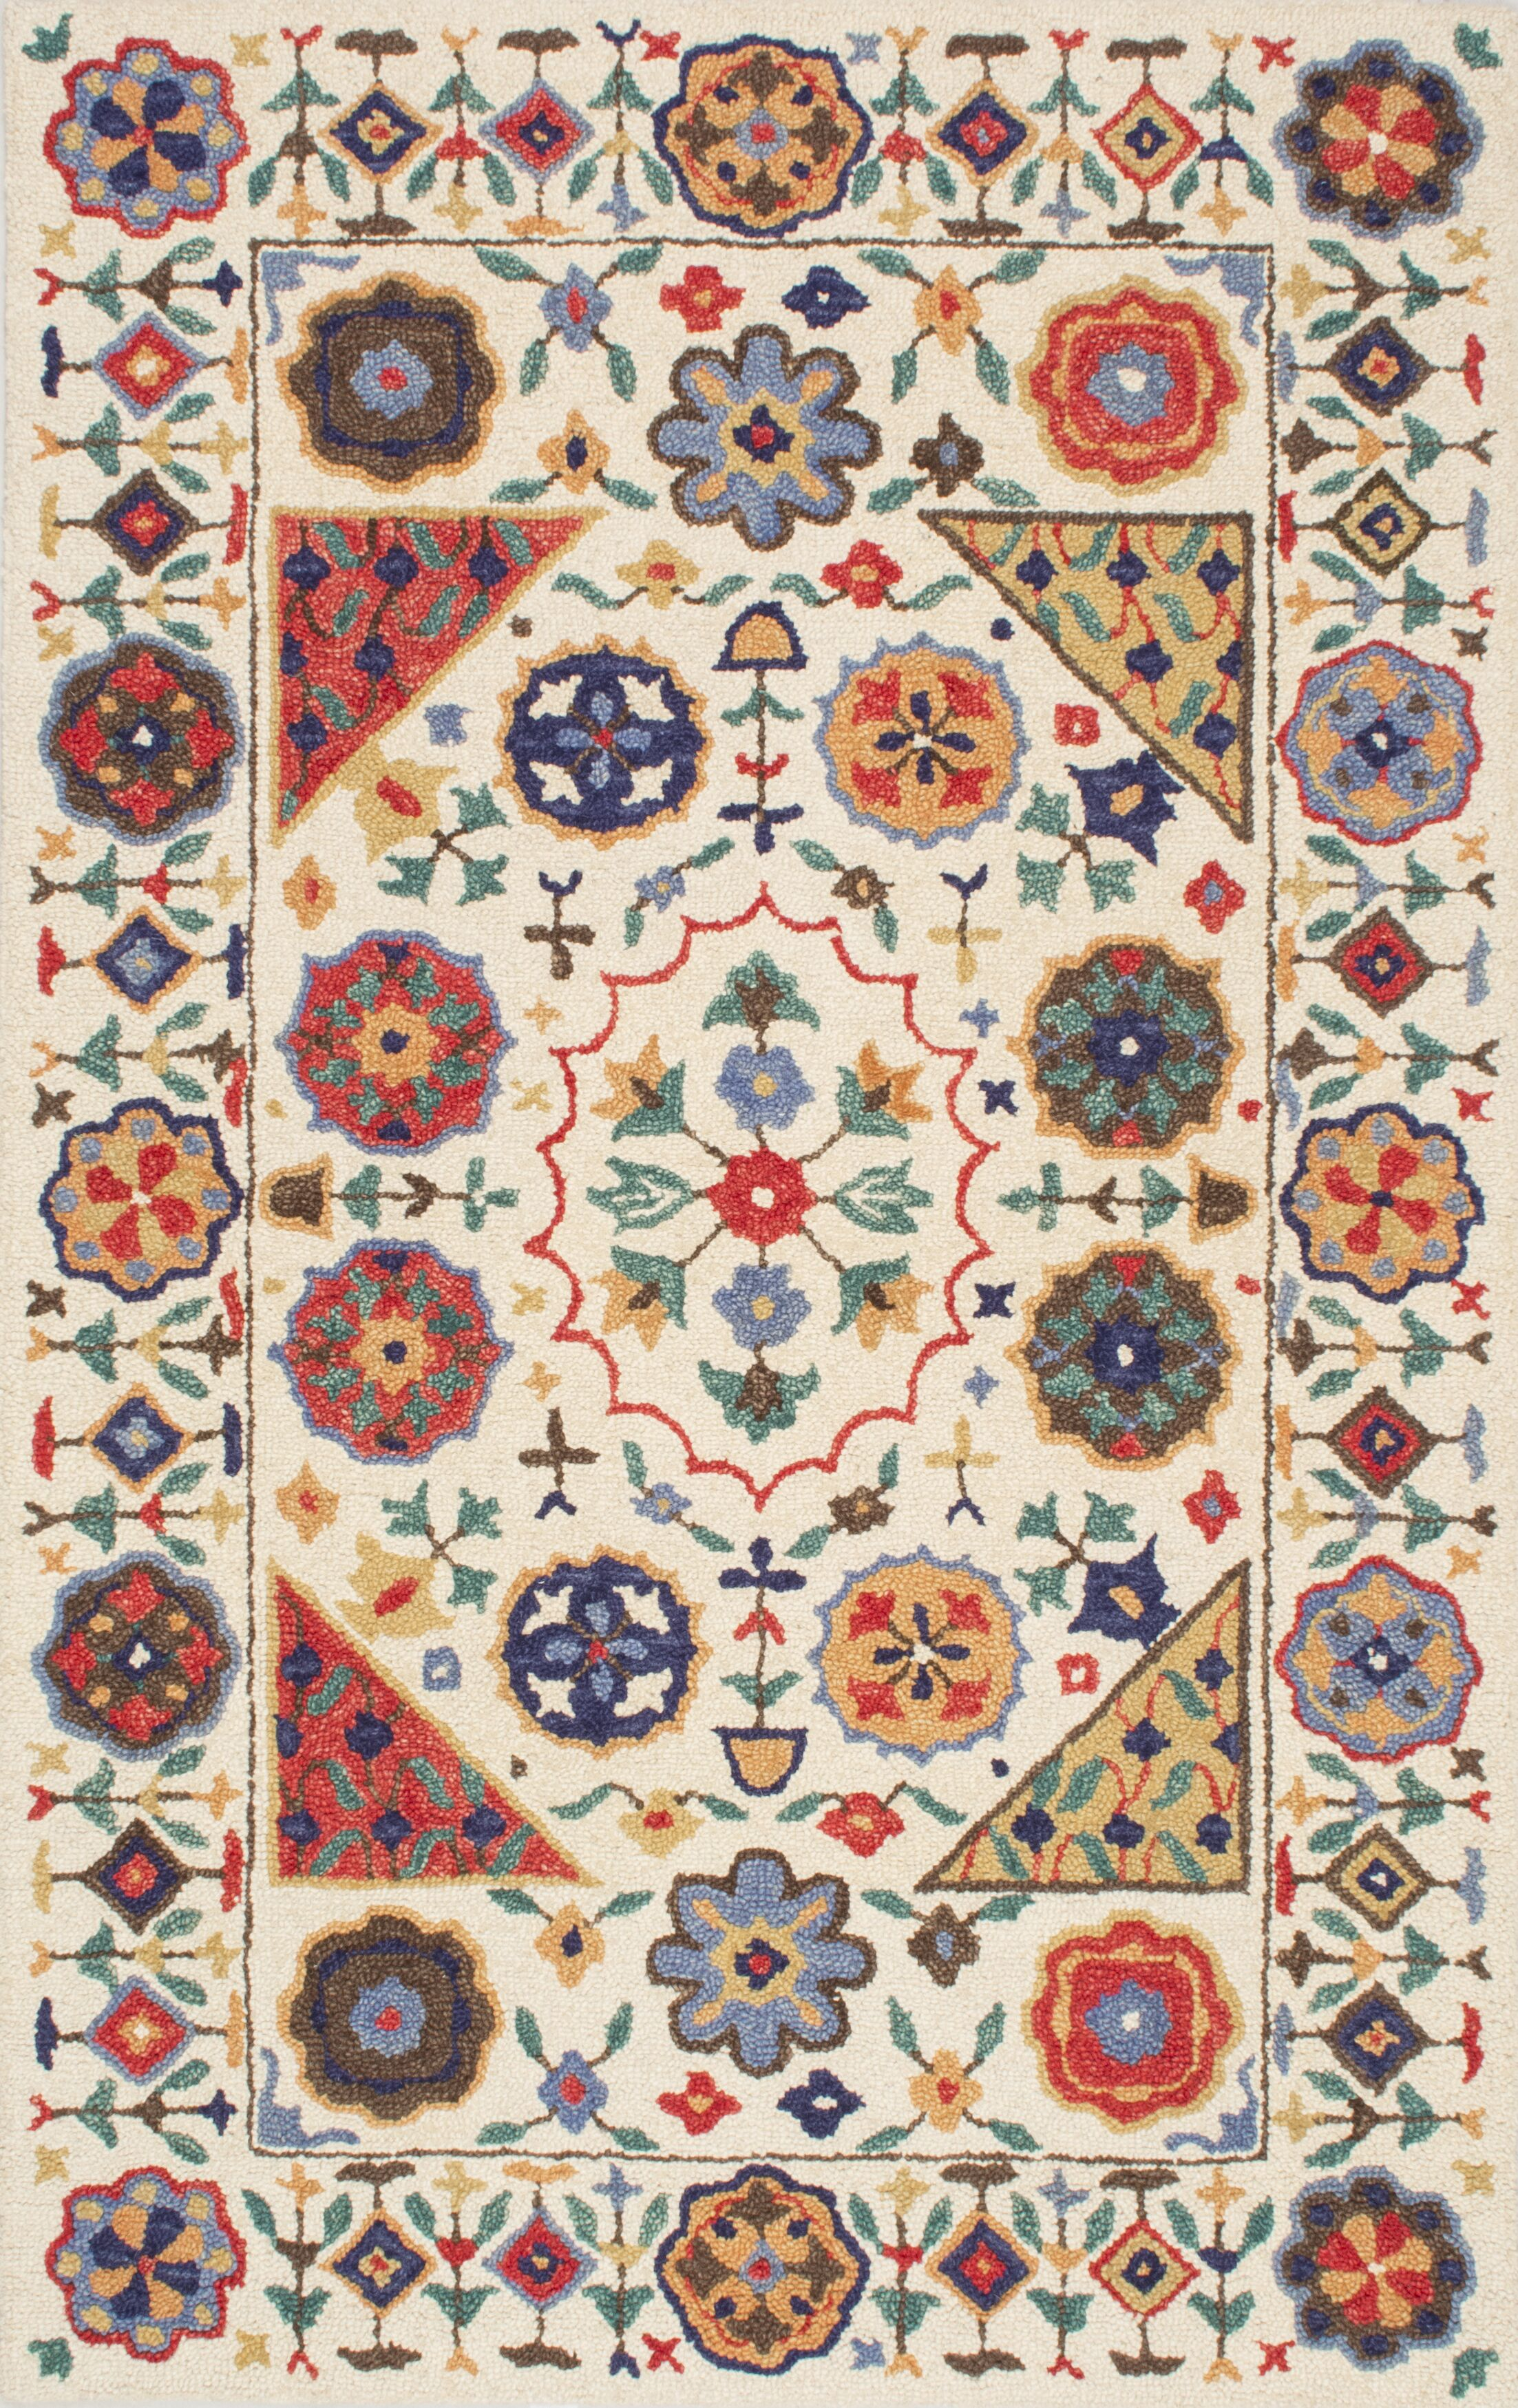 Aqdal Hand-Tufted Beige/Red Area Rug Rug Size: Rectangle 4' x 6'